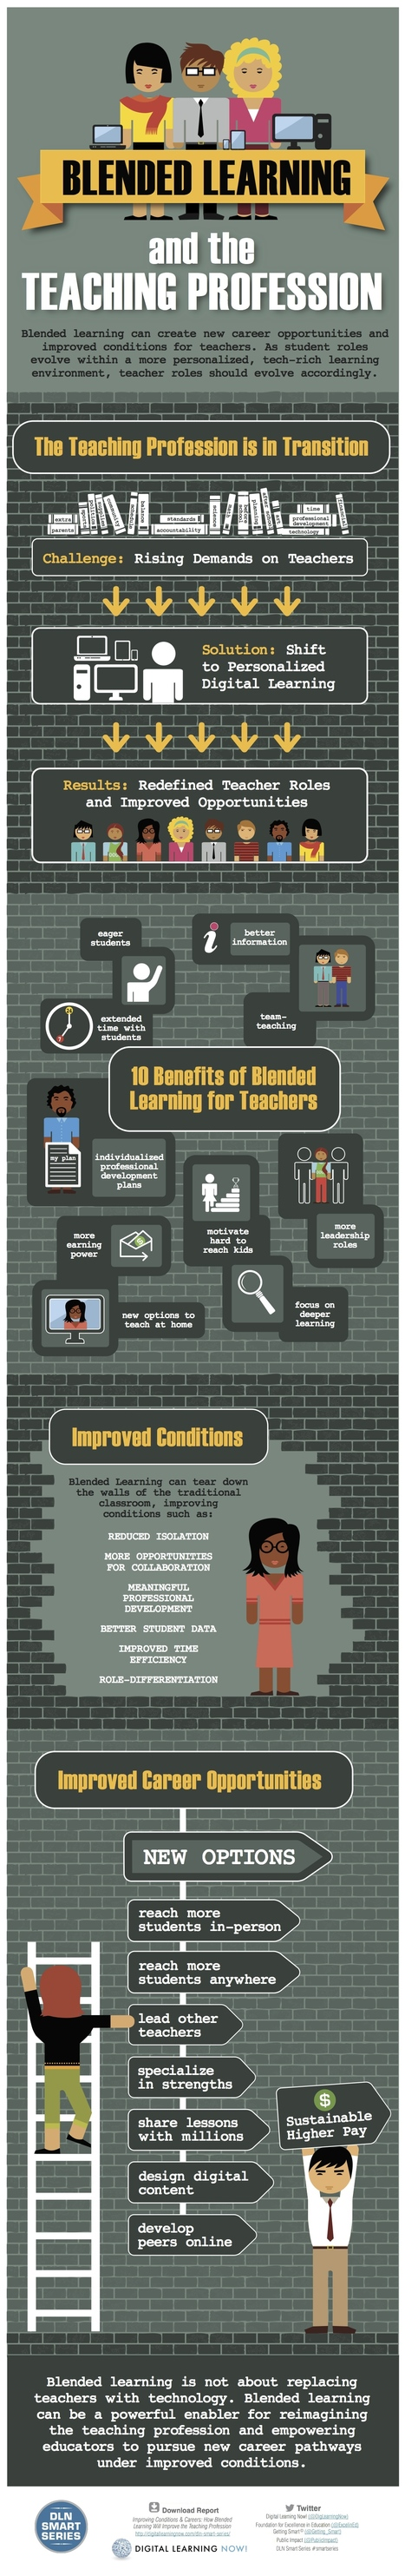 Blended Learning & The Teaching Profession [Infographic] | Emerging Classroom | Scoop.it